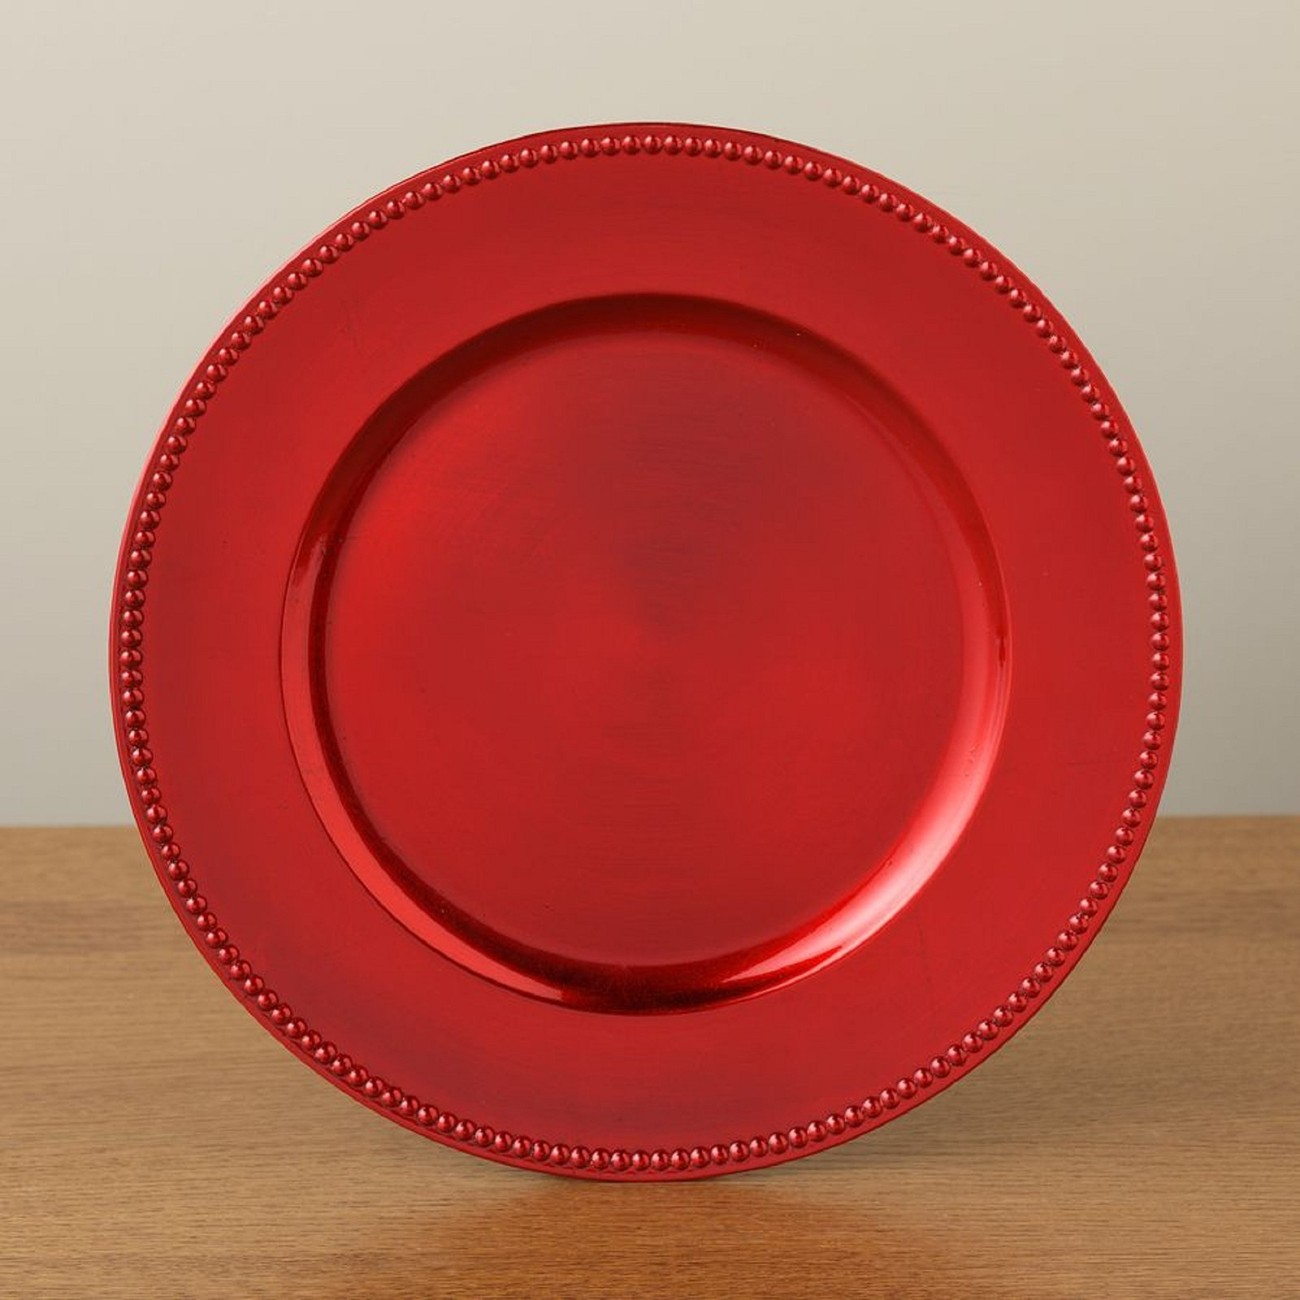 Christmas Crafts With Red Plates